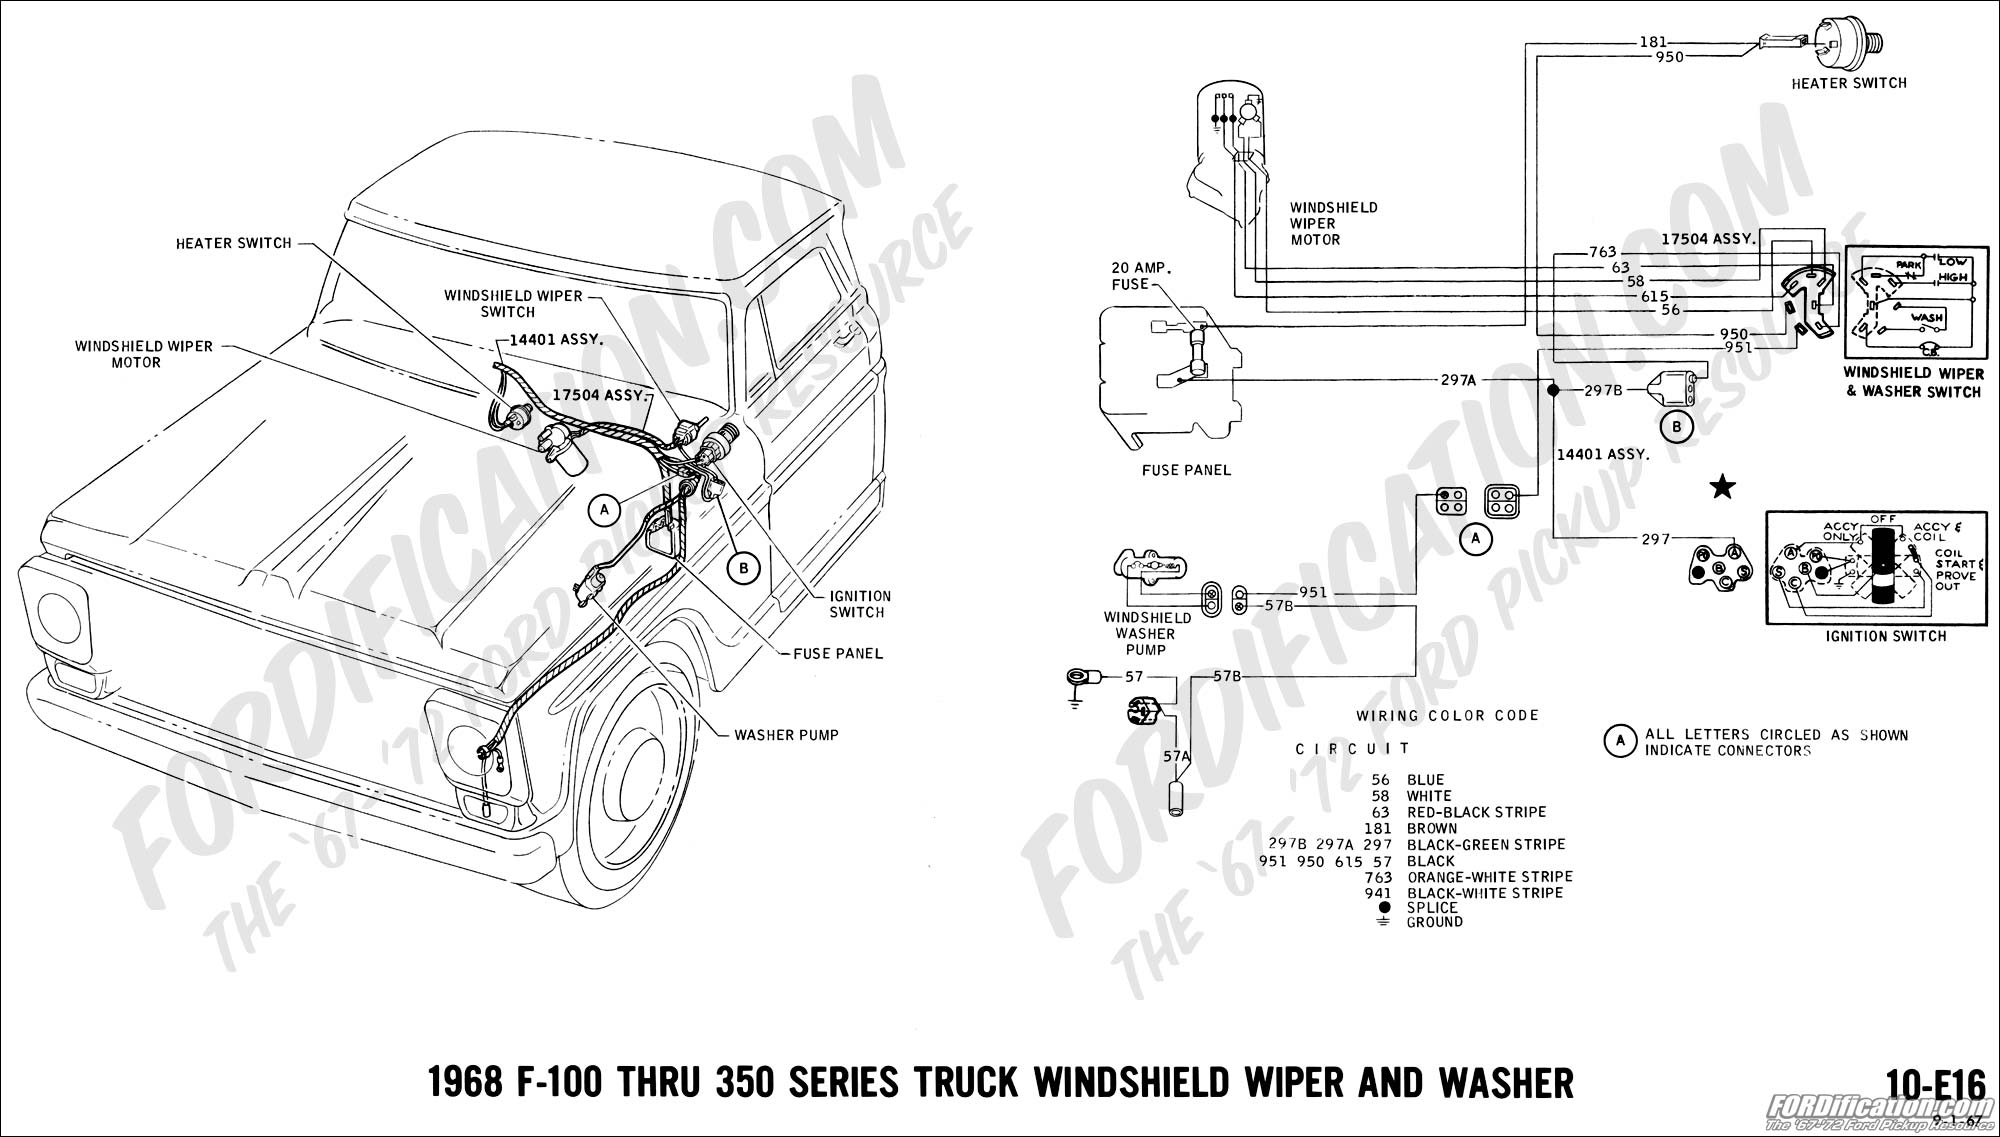 1992 Chevrolet Wiring Diagram Horn Library 94 Chevy 2004 Ford Ranger Schematics Auto Electrical 1994 F150 Backup Light